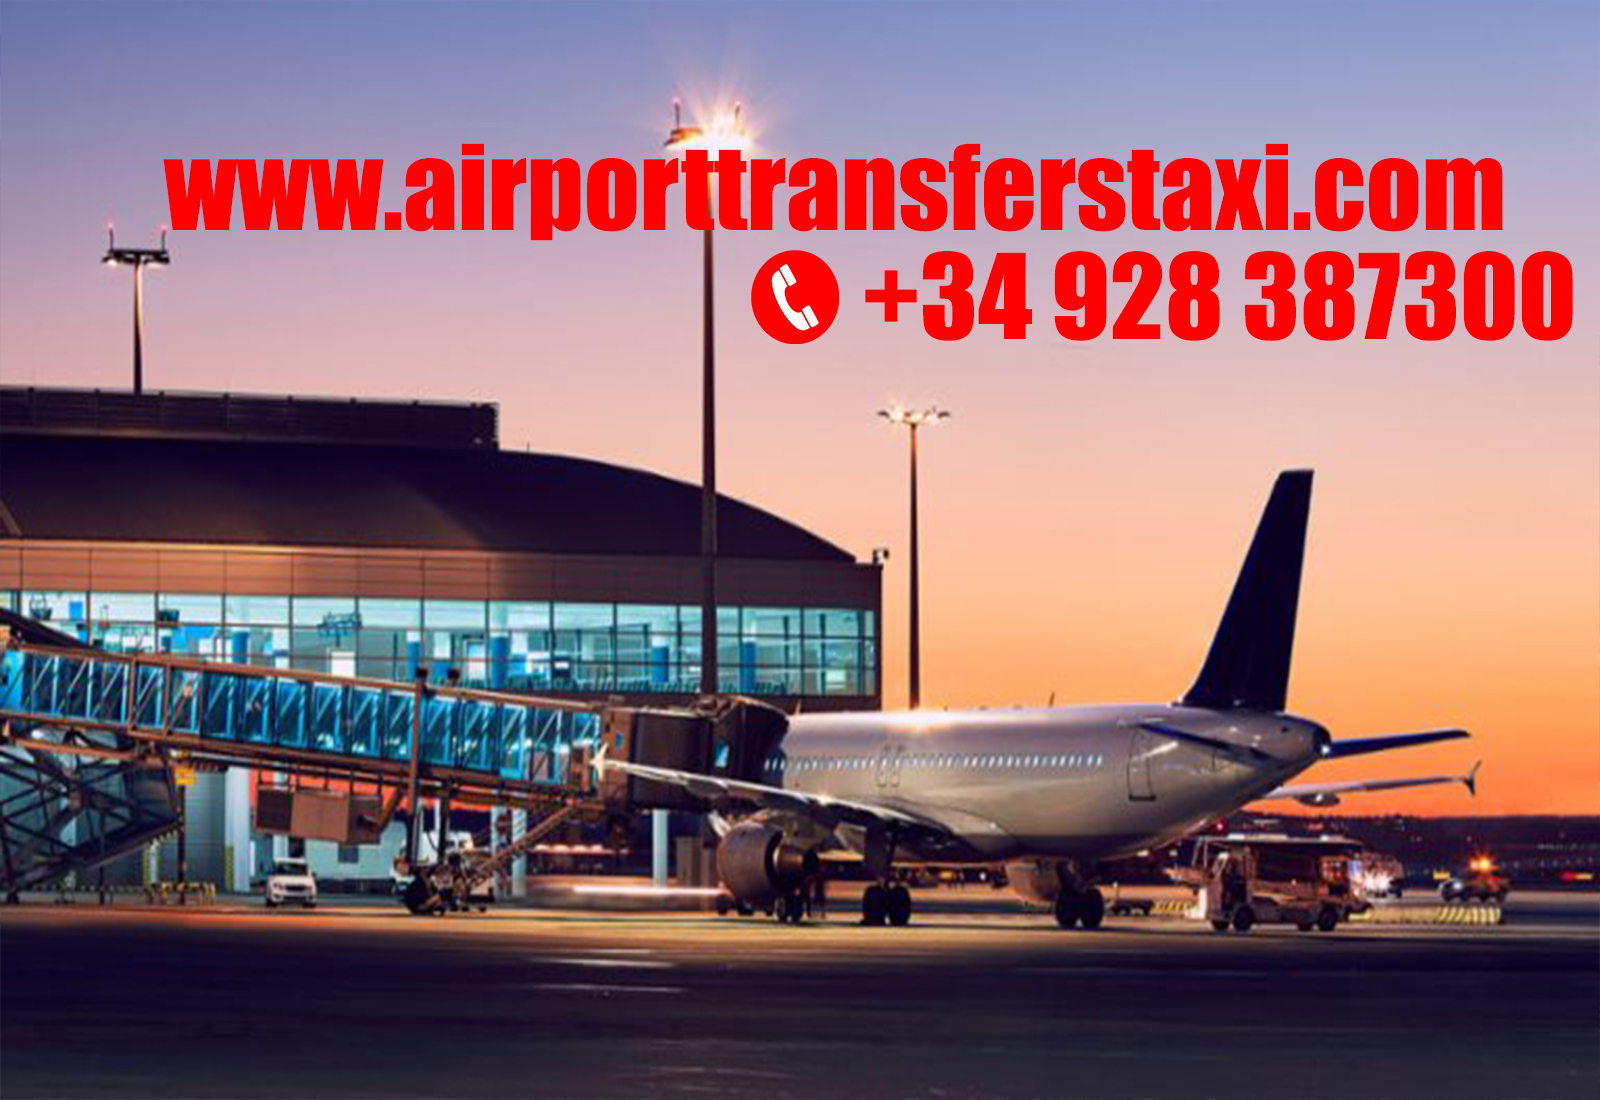 Airport Transfers Taxis Canary Islands